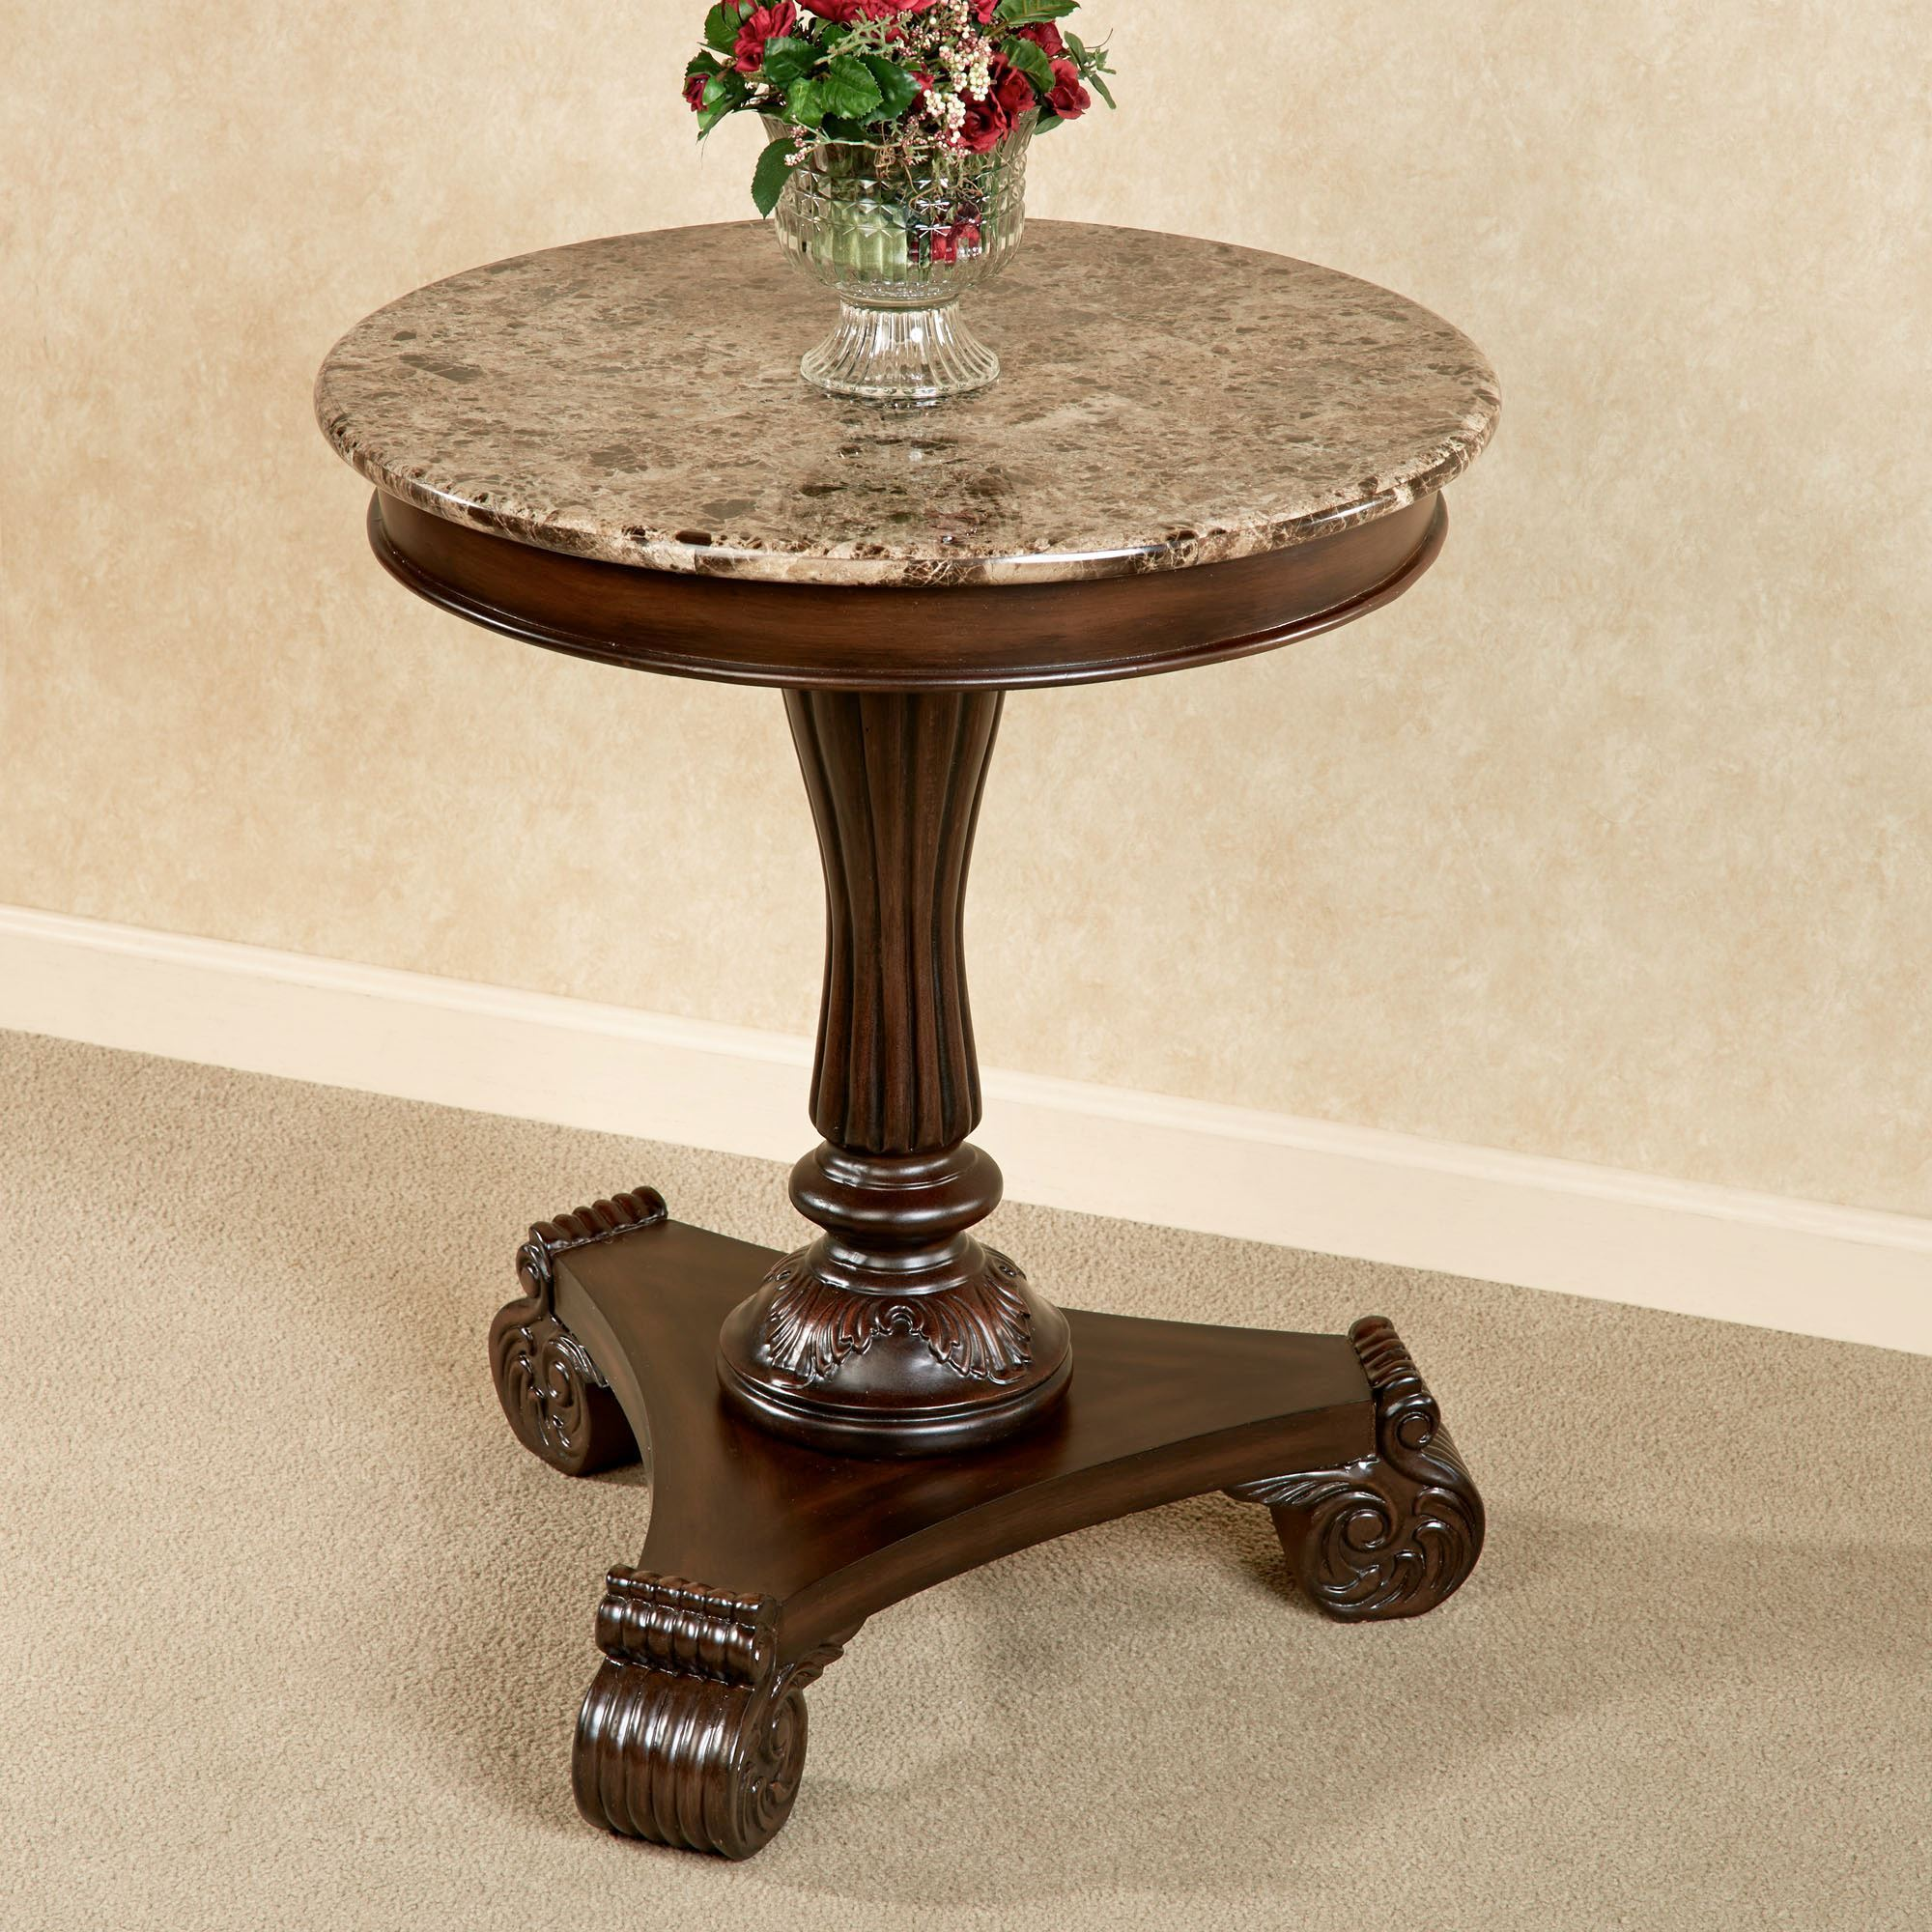 cherry accent table with charcoal black metal design tables touch class round iron furniture glass replacement uttermost wall decor marble dining room narrow wine rack west elm